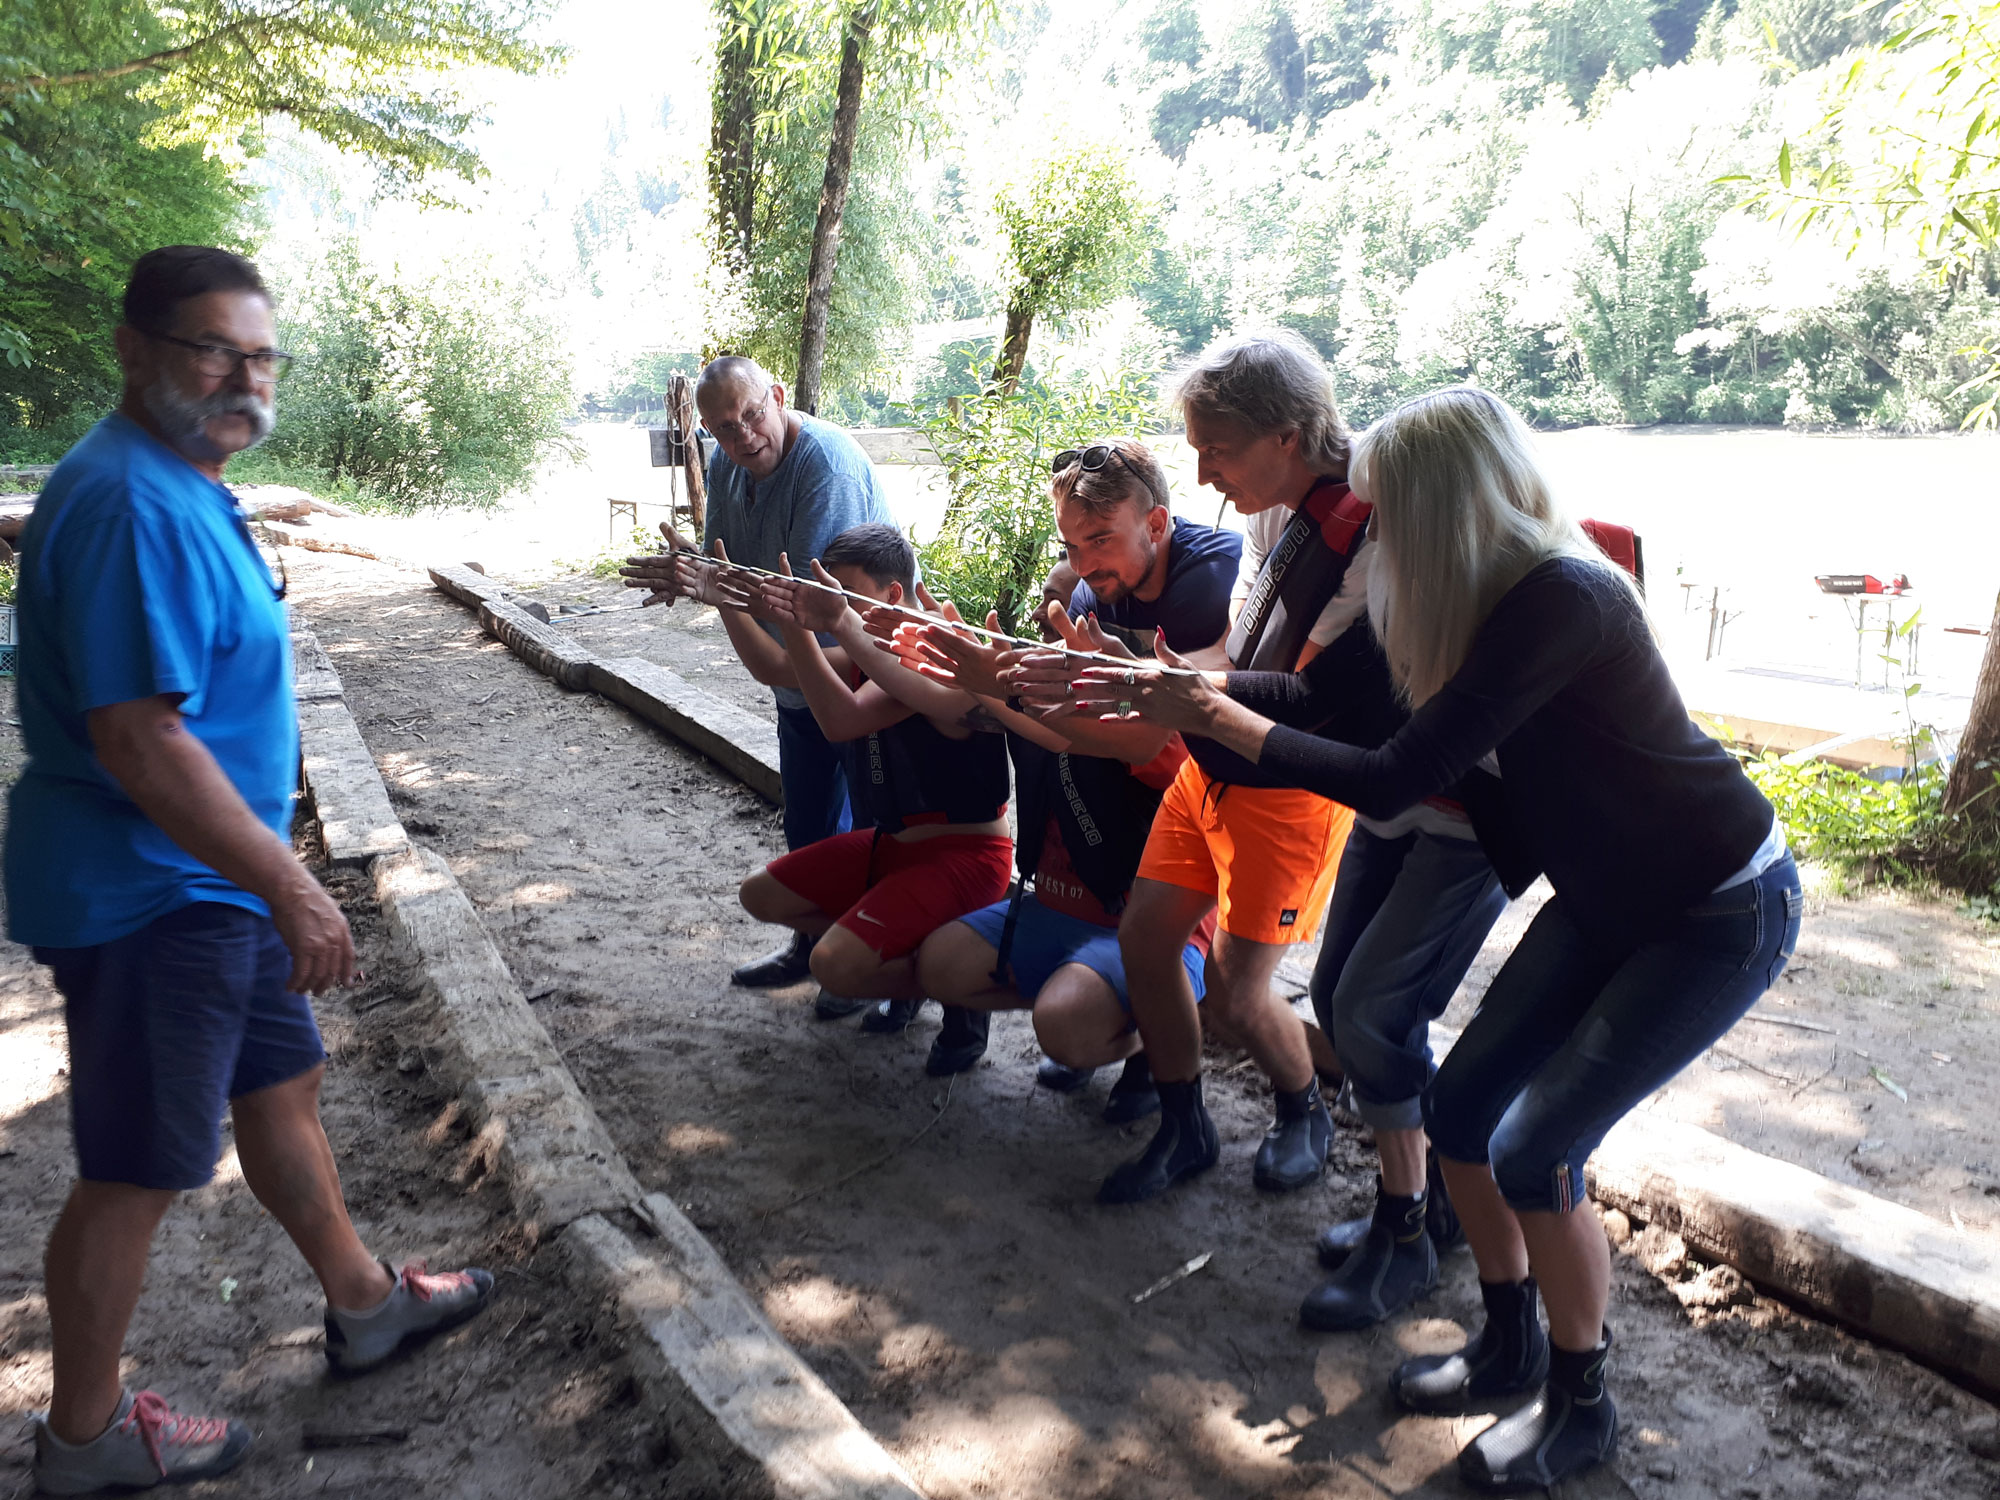 Bichler Installtionen Team Building Enns Floss bauen